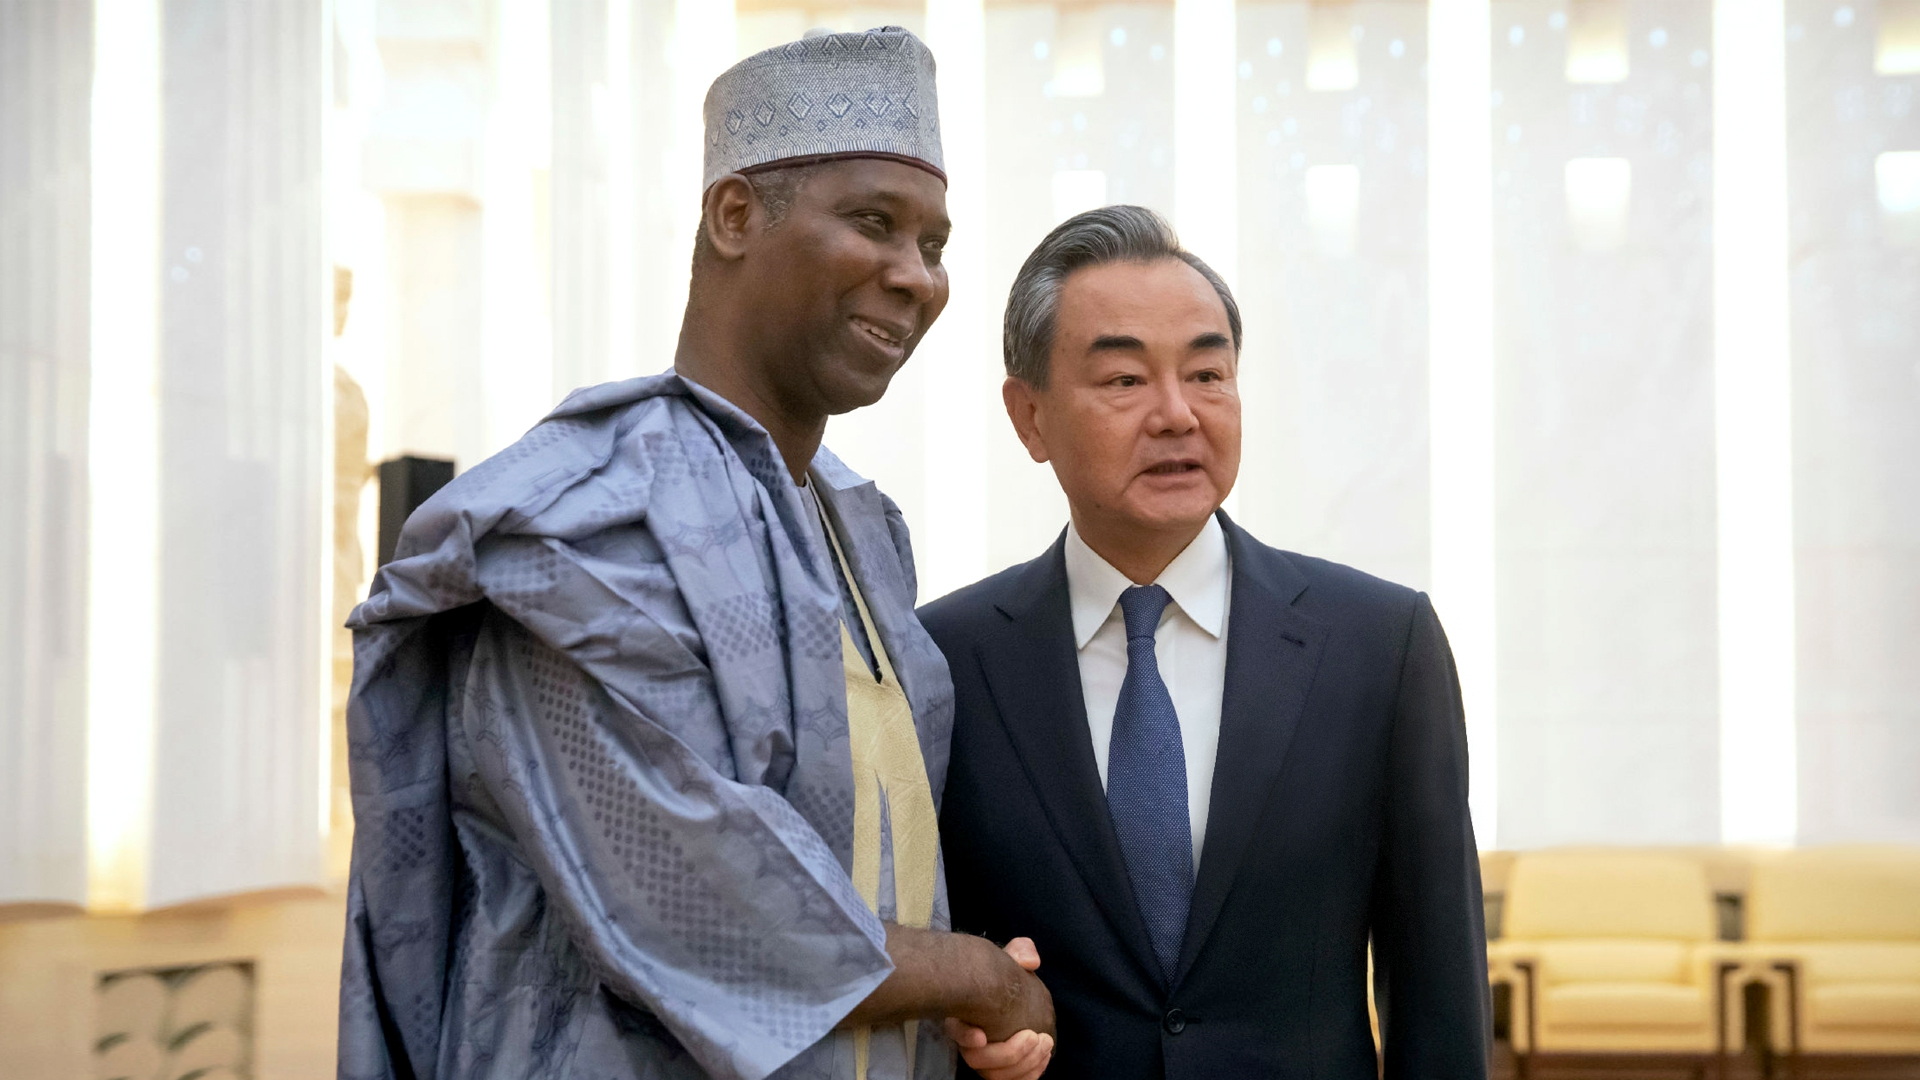 UNGA president-elect agrees with Chinese officials to uphold multilateralism